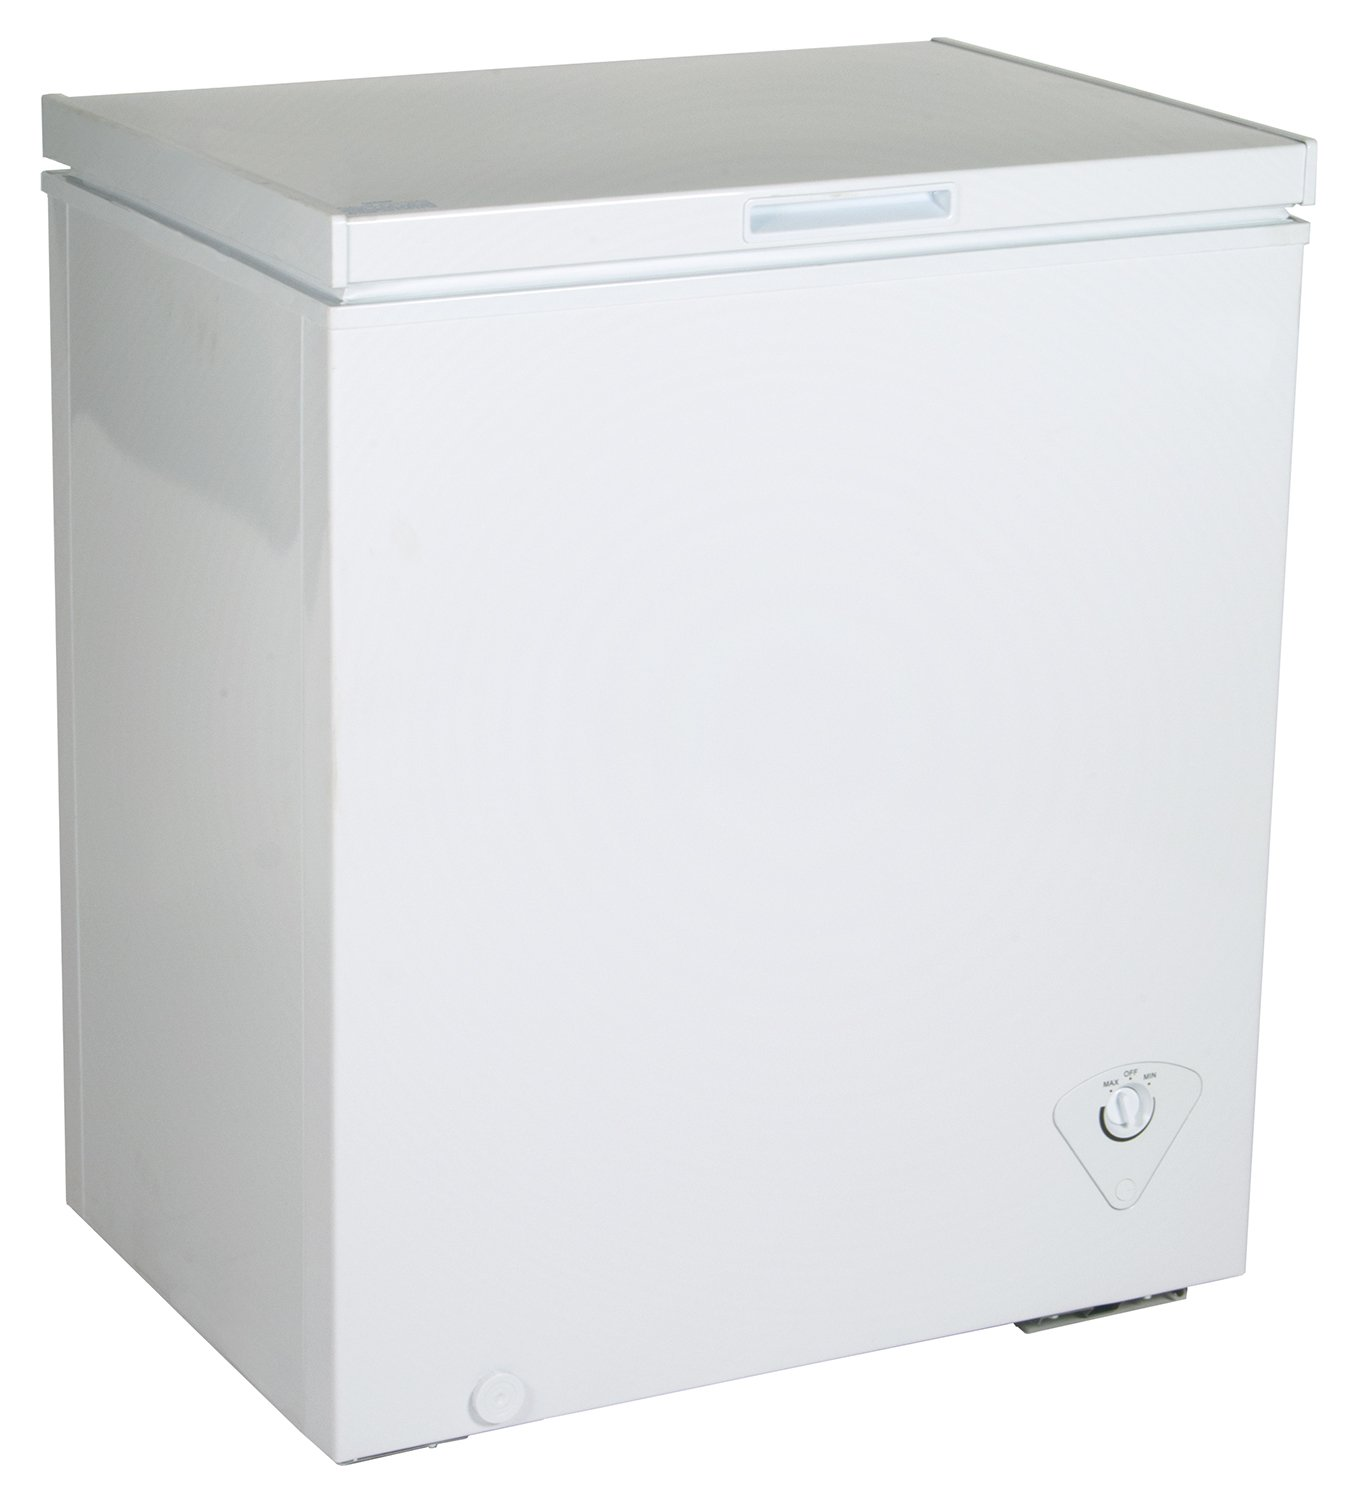 Koolatron KTCF155 5 Cubic Foot (142 Liters) Chest Freezer with Adjustable Thermostat, White